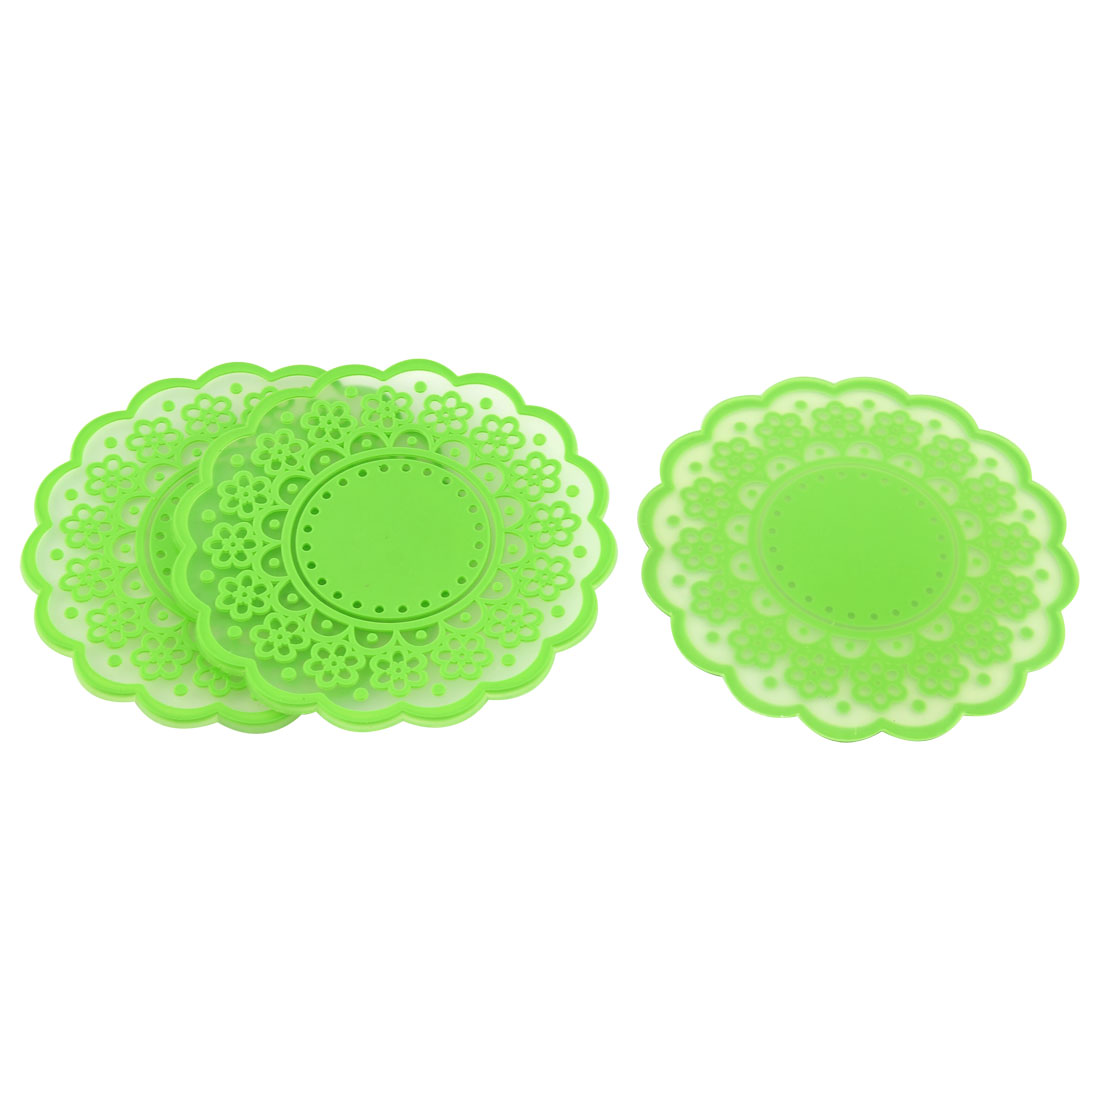 Household Silicone Flower Shaped Teapot Bottle Cup Coasters Mat Green 3 Pcs